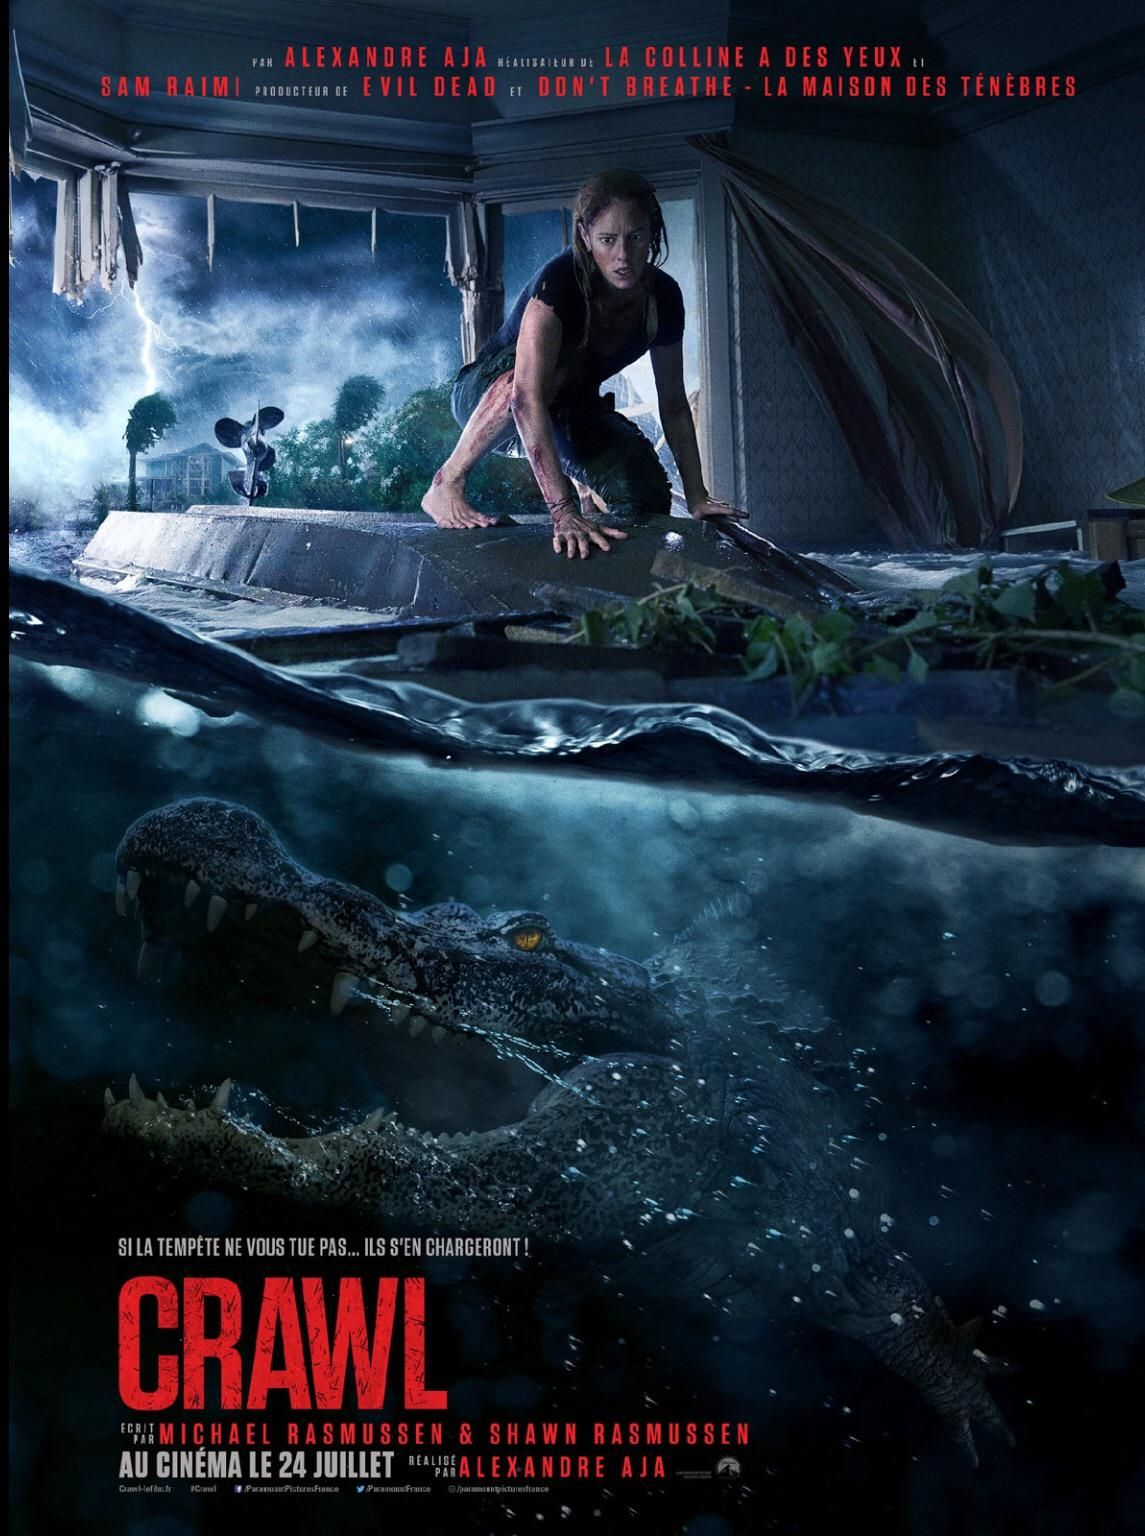 The Movie Crawl 2019 Does Not Feature The Line See You Later Alligator Therefore Making The Movie Absolute Shit Full Movies The Hills Have Eyes Movies 2019